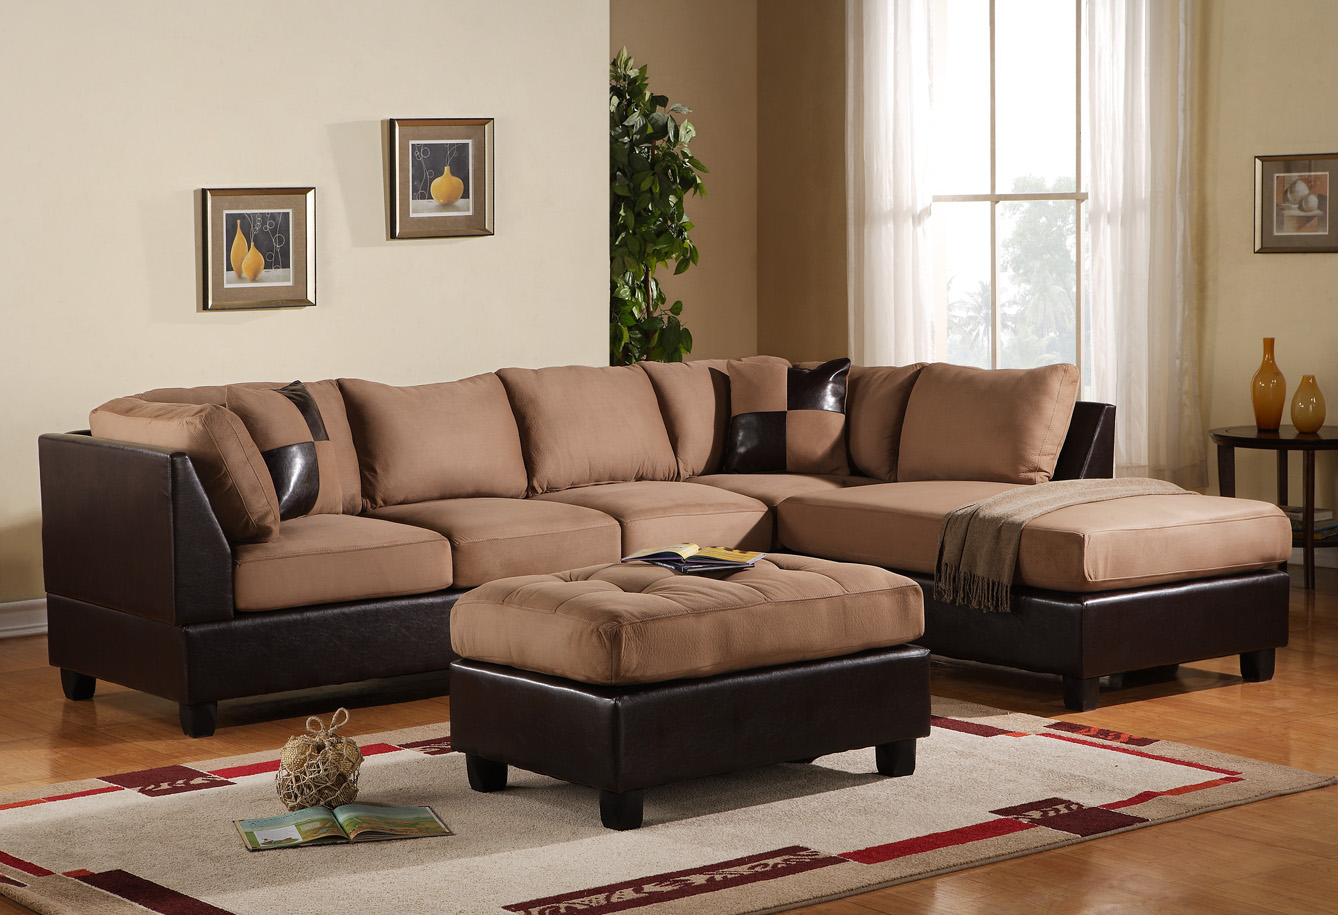 enter to win a 3 piece sofa sectional value 700 a time out for